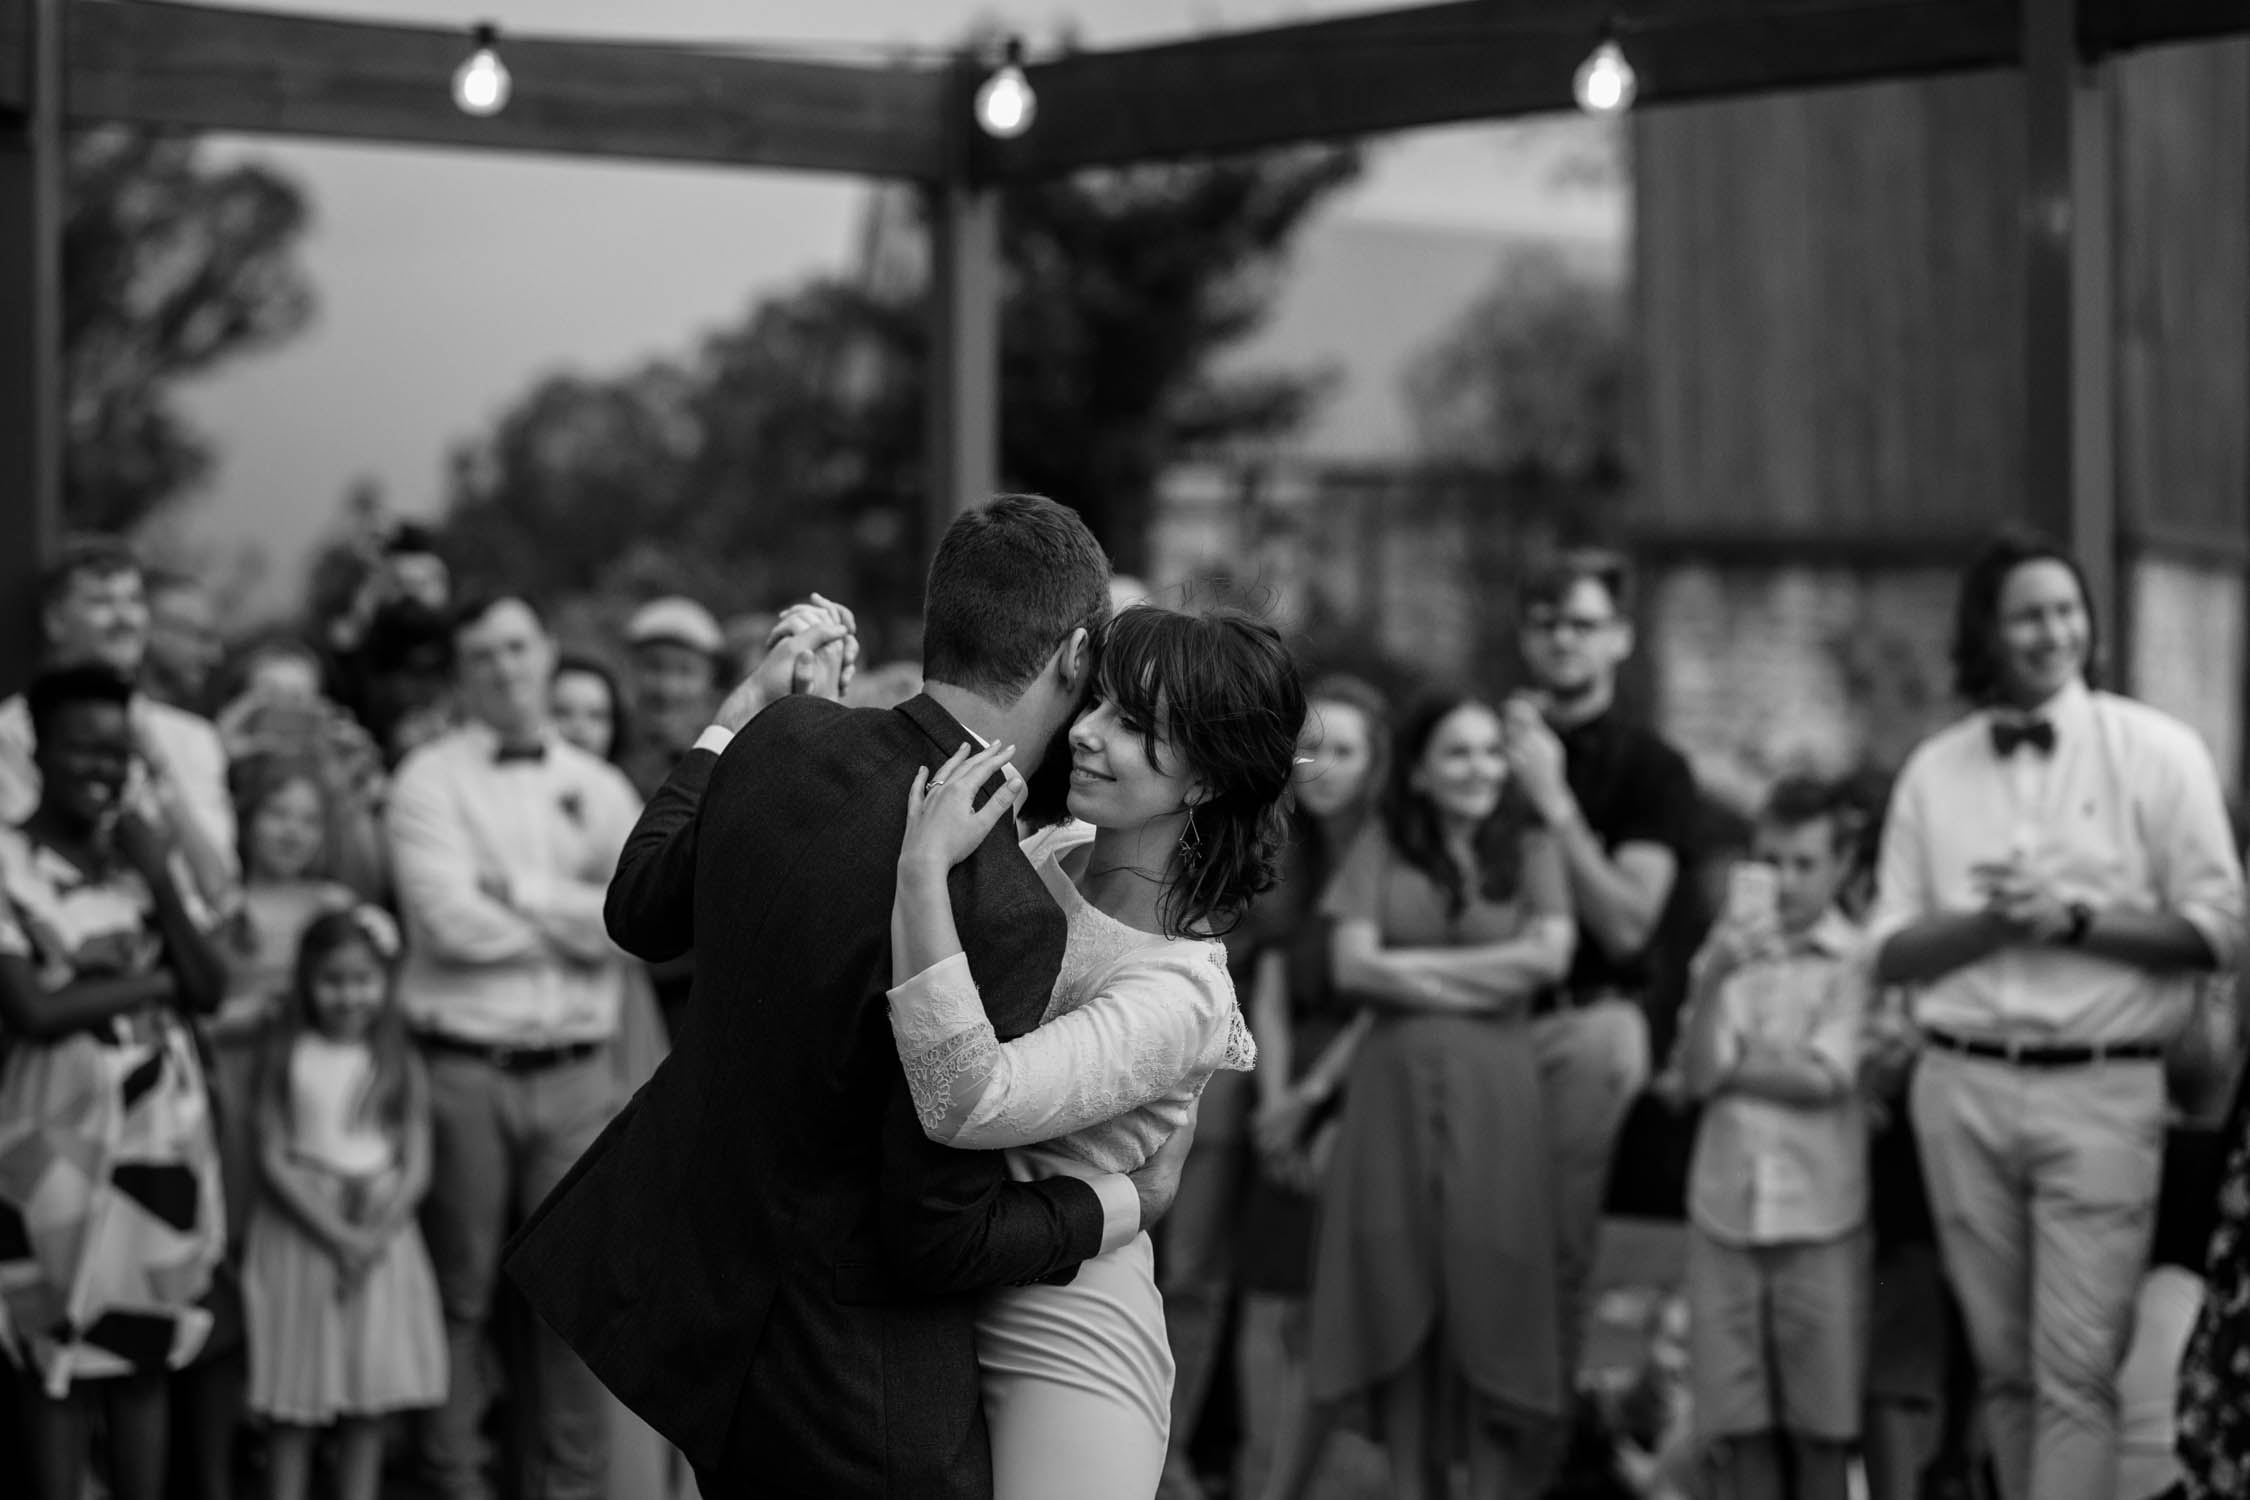 Epic black and white photo of first dance at dusk surrounded by wedding guests under Edison light bulbs to live hipster band